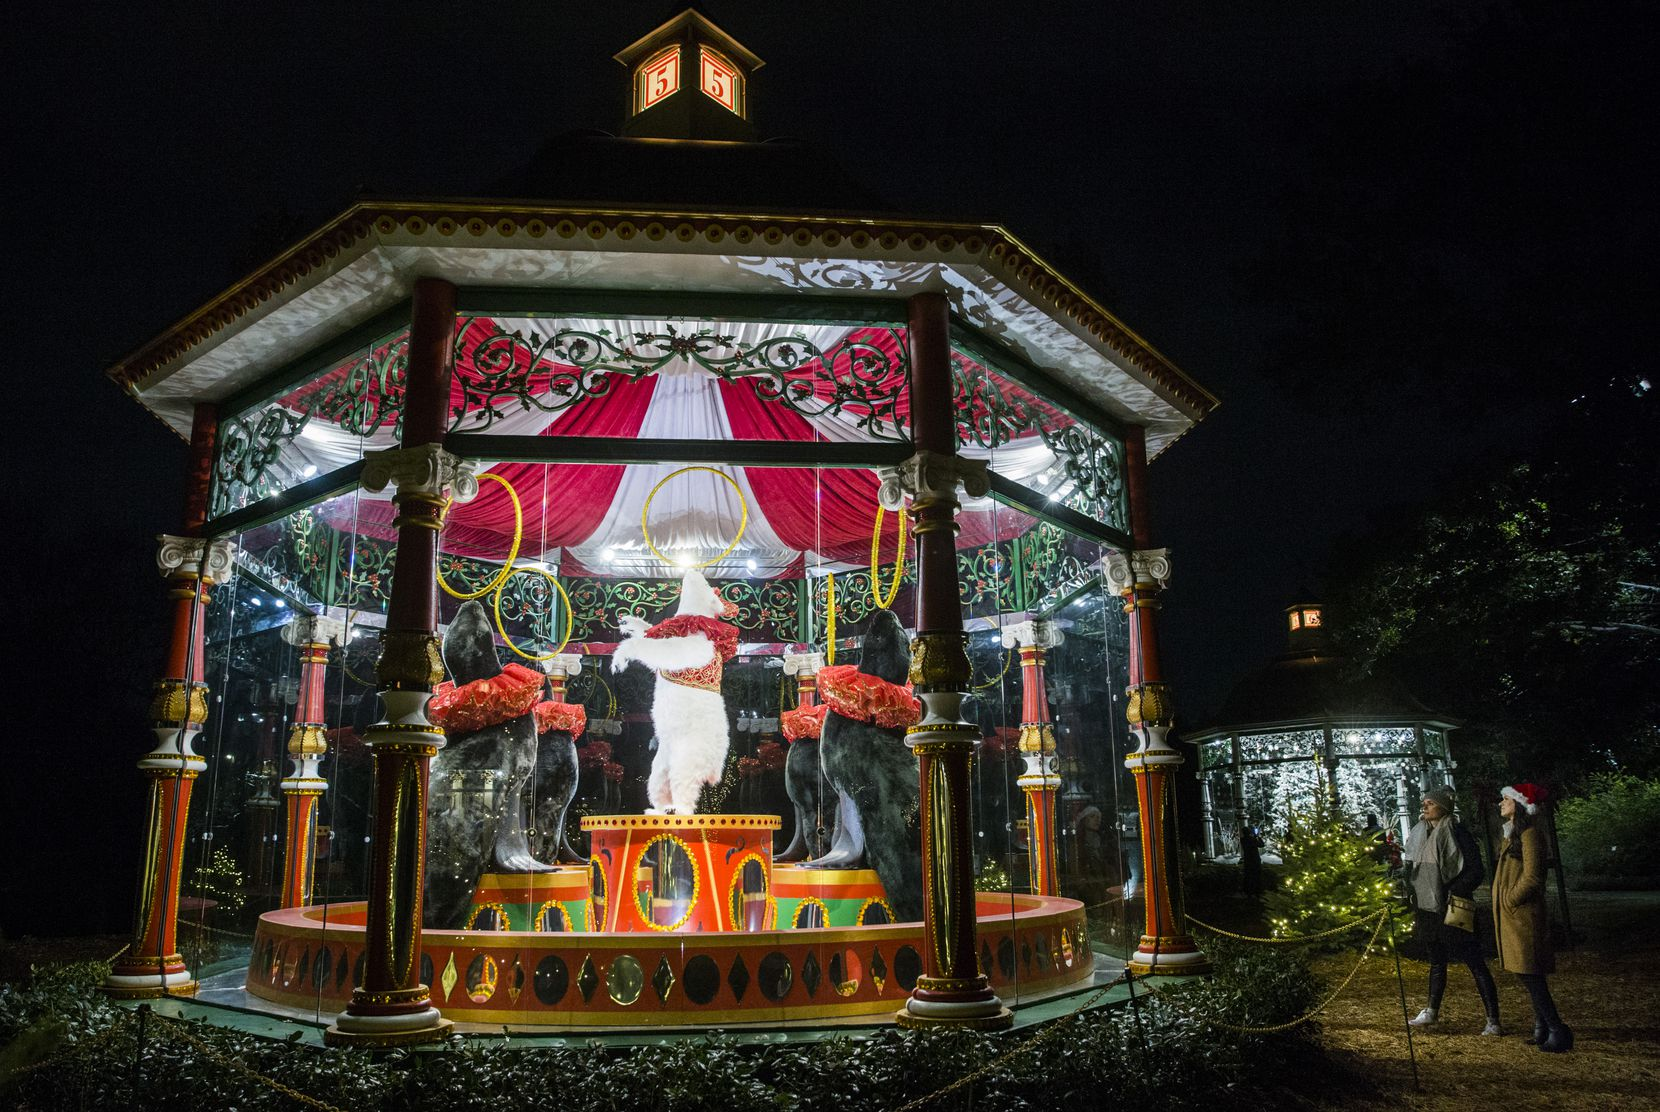 """The 12 Days of Christmas"" exhibit is back at the Dallas Arboretum, featuring 12 glass-encased gazebos that depict scenes from each verse of the holiday carol."